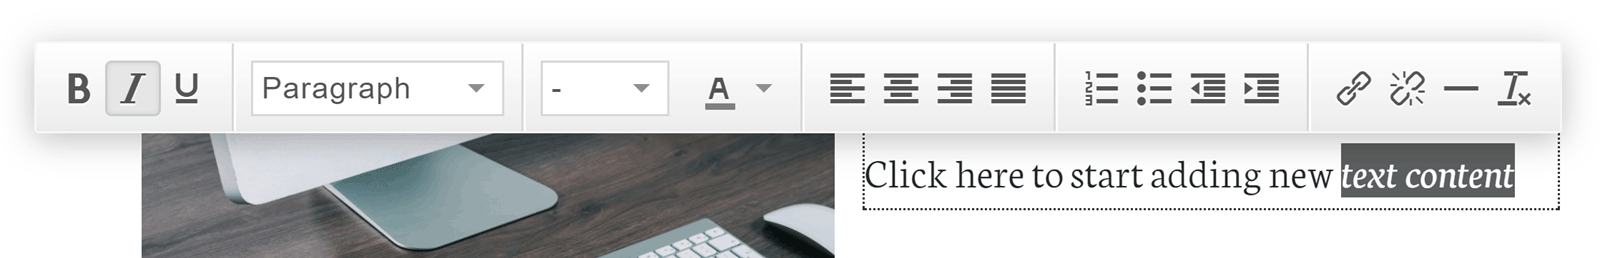 Click to Edit User Interface